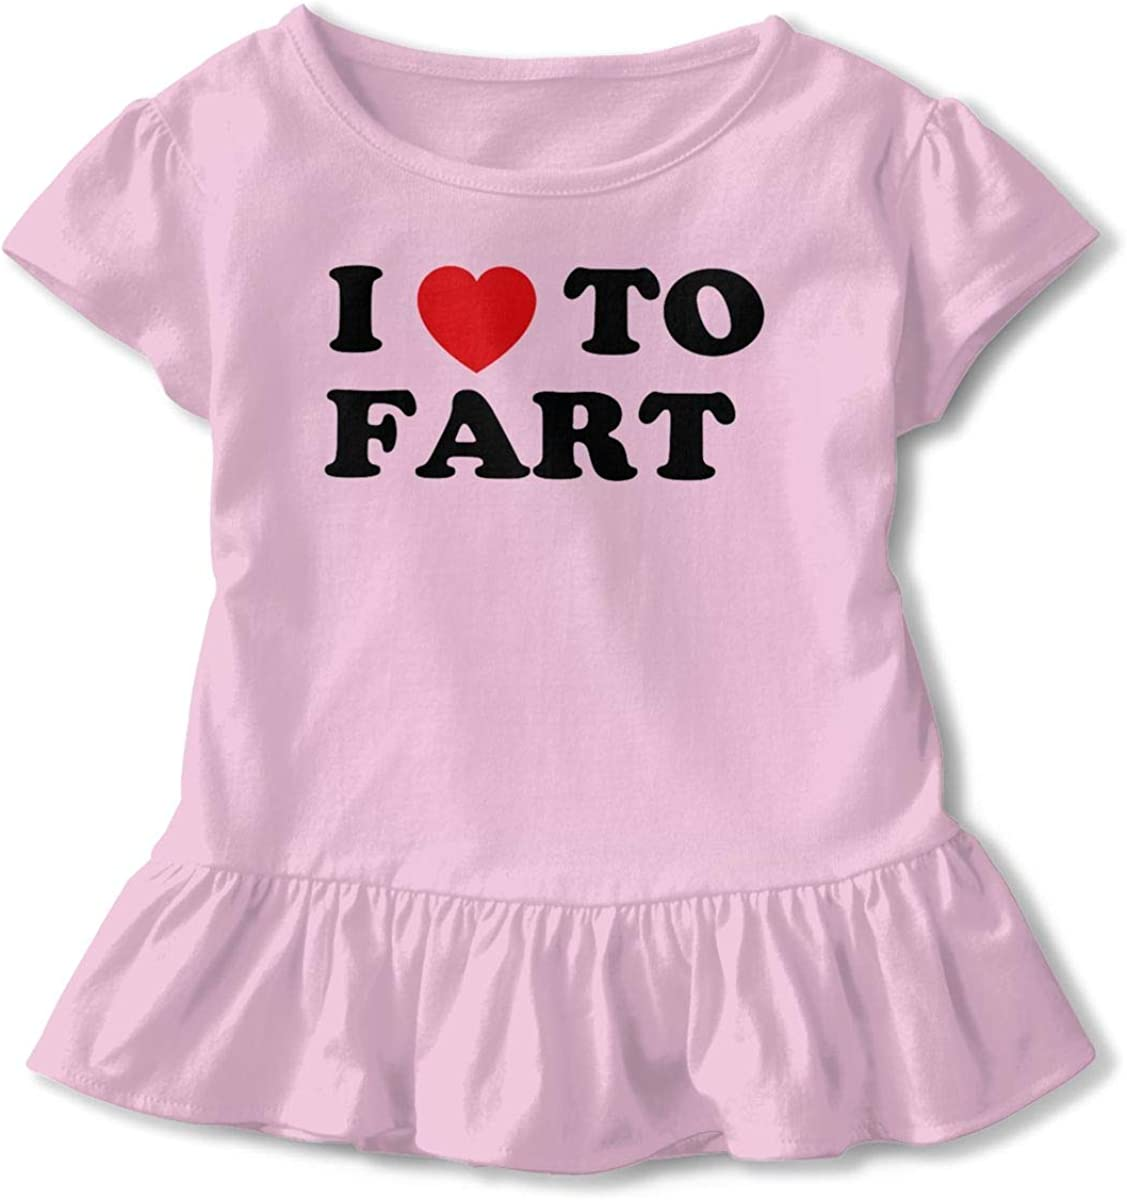 I Love to Fart Shirt Baby Girls Ruffles Cute T Shirts for 2-6 Years Old Baby